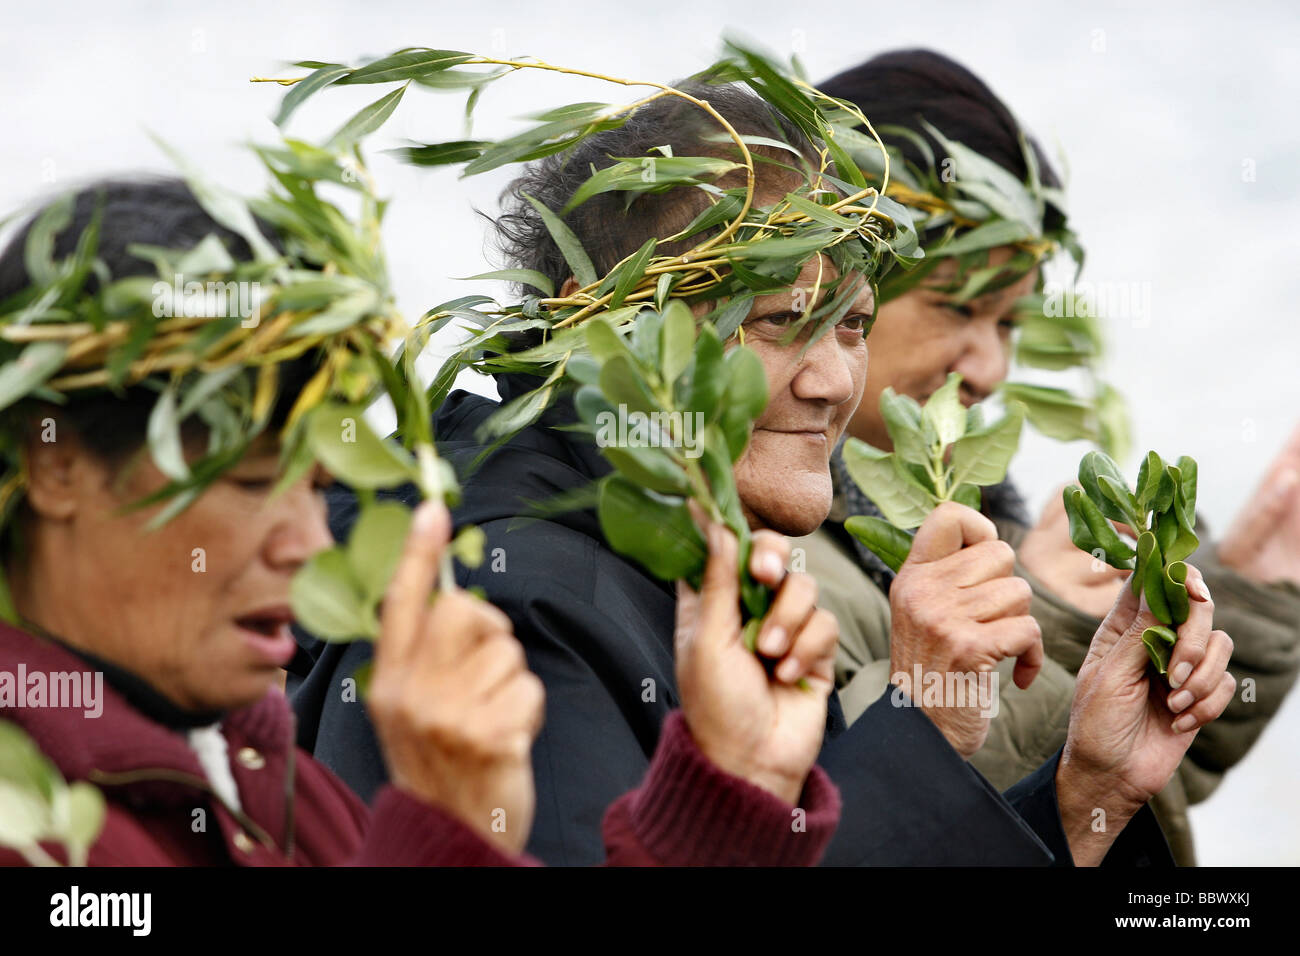 Repatriation of ancient Maori bones, thought to be of the original Polynesian settlers to New Zealand, Wairau Bar, - Stock Image